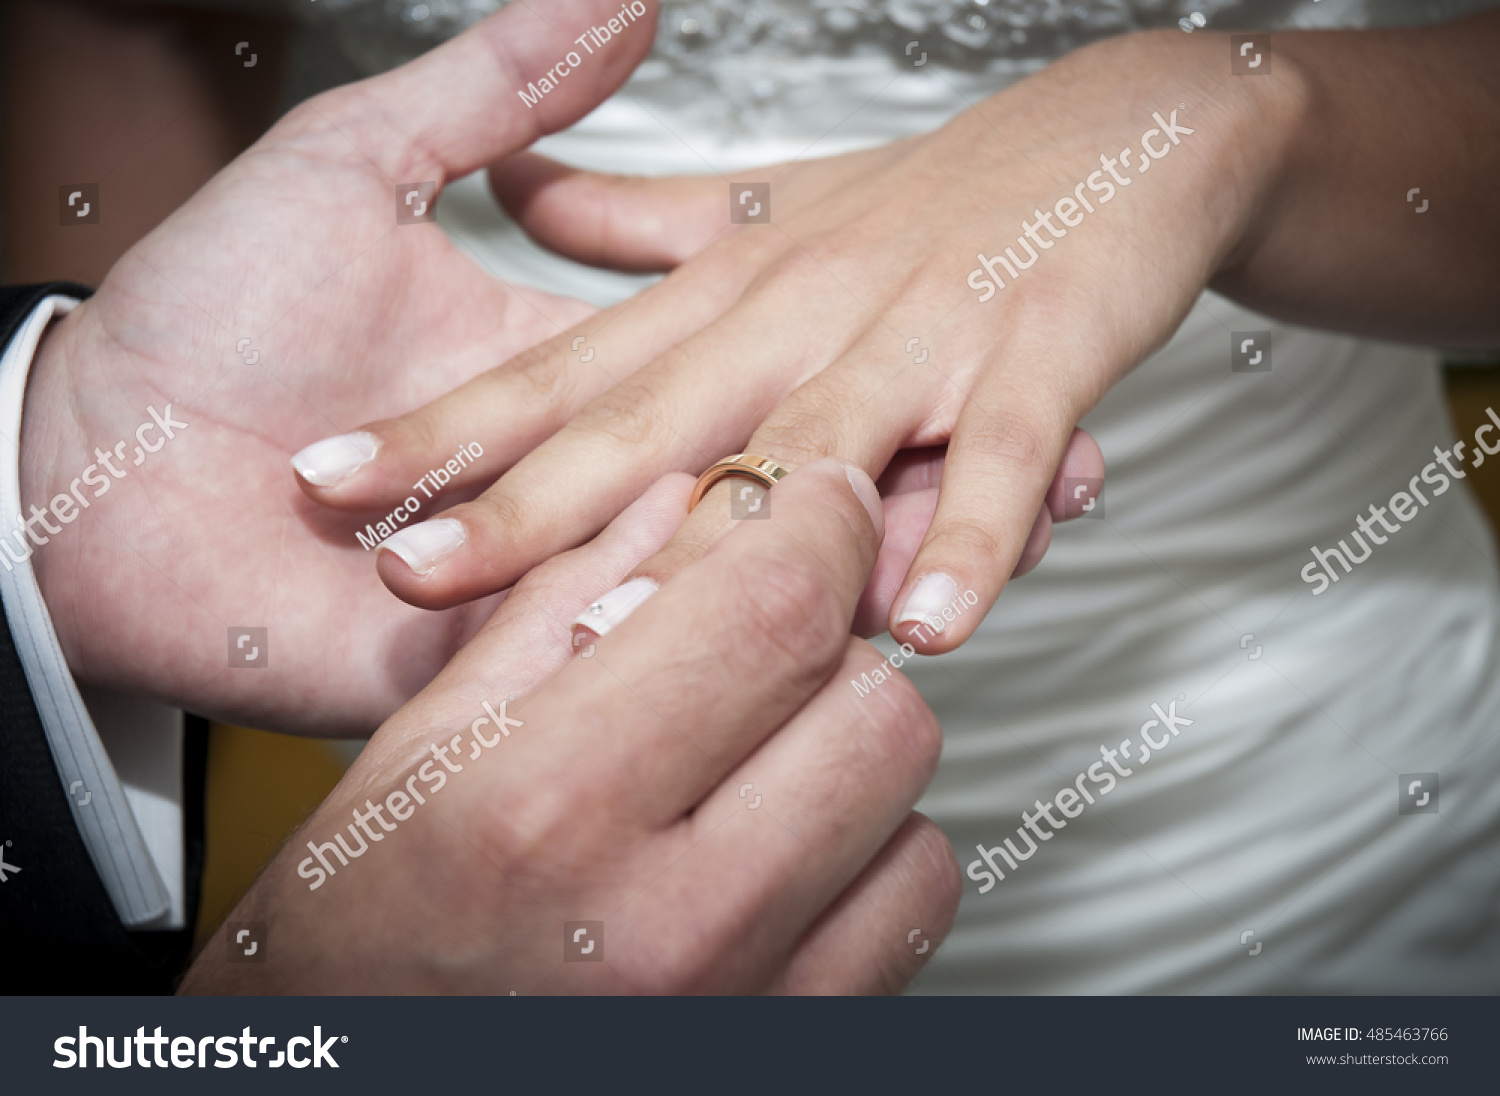 Exchange Wedding Rings Stock Photo (Download Now) 485463766 ...